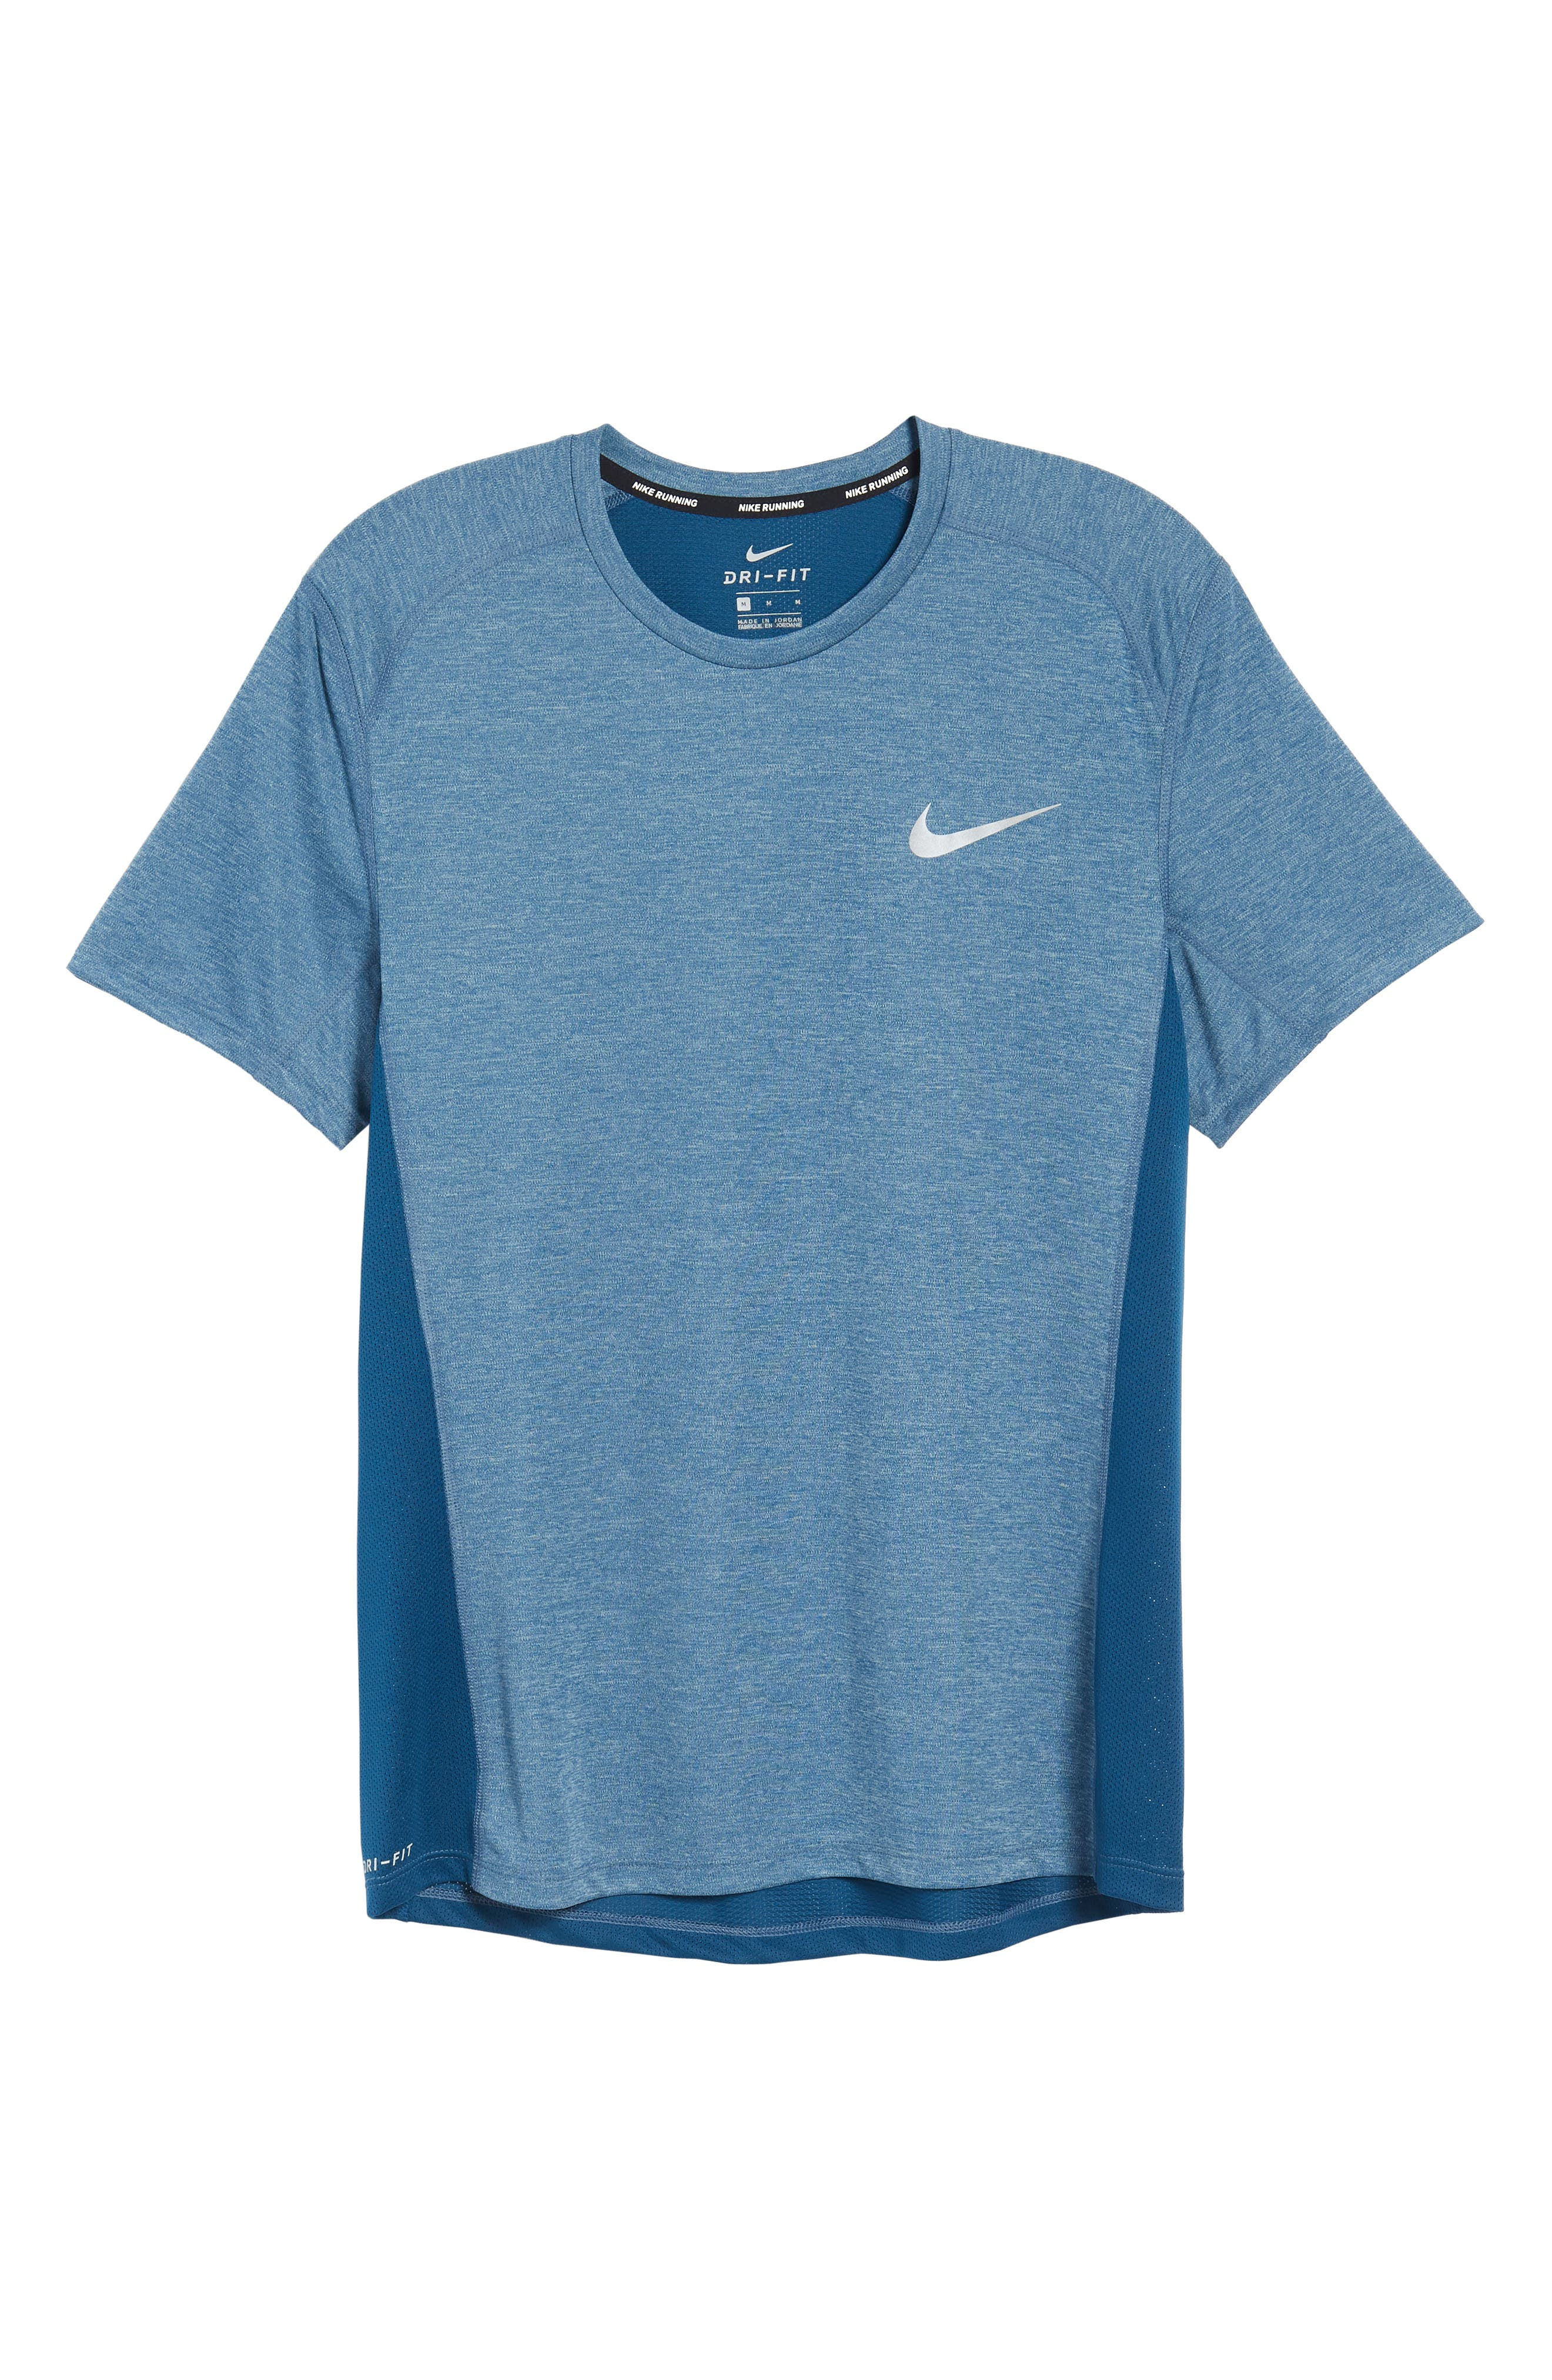 Dry Miler Running Top,                             Alternate thumbnail 6, color,                             Blue Force/ Heather